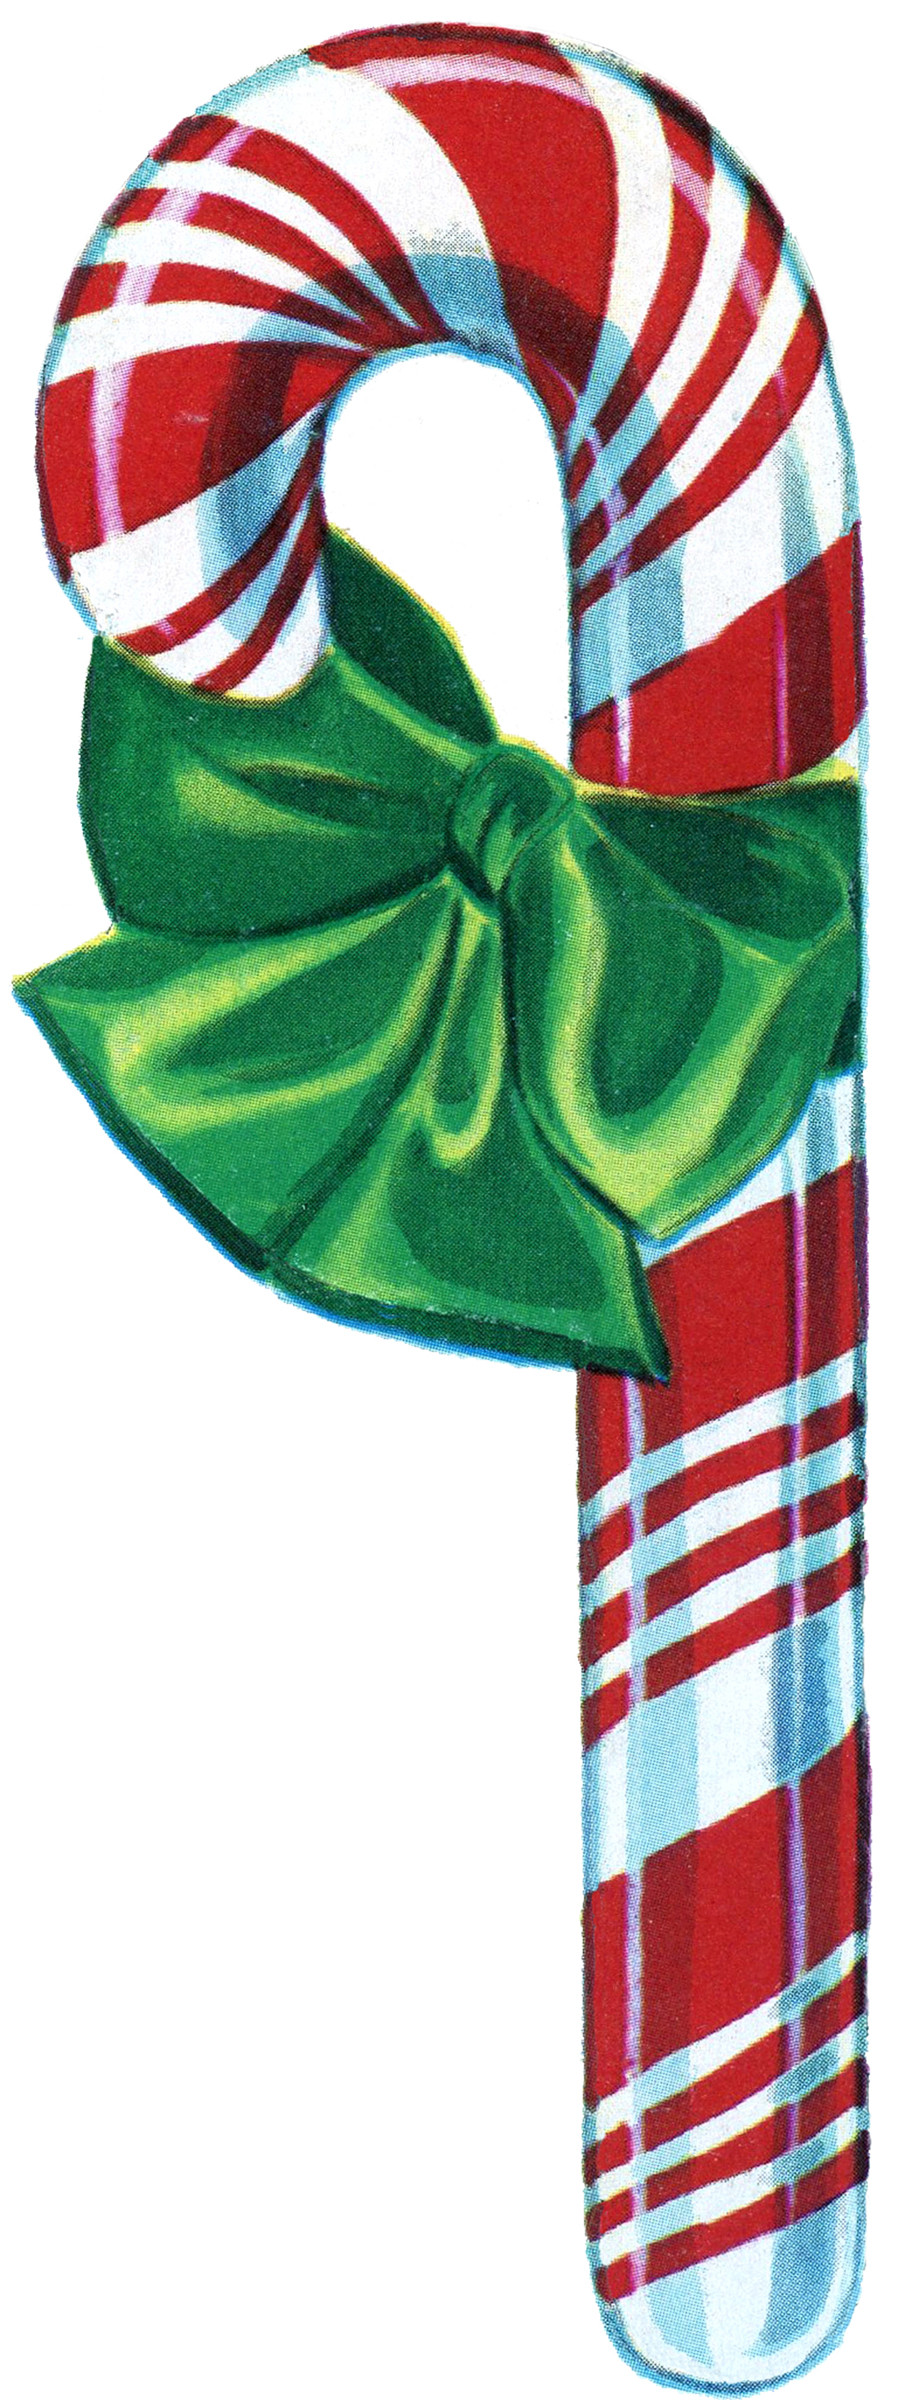 Christmas Candy Cane Clipart  Free Vintage Christmas Clip Art Candy Cane The